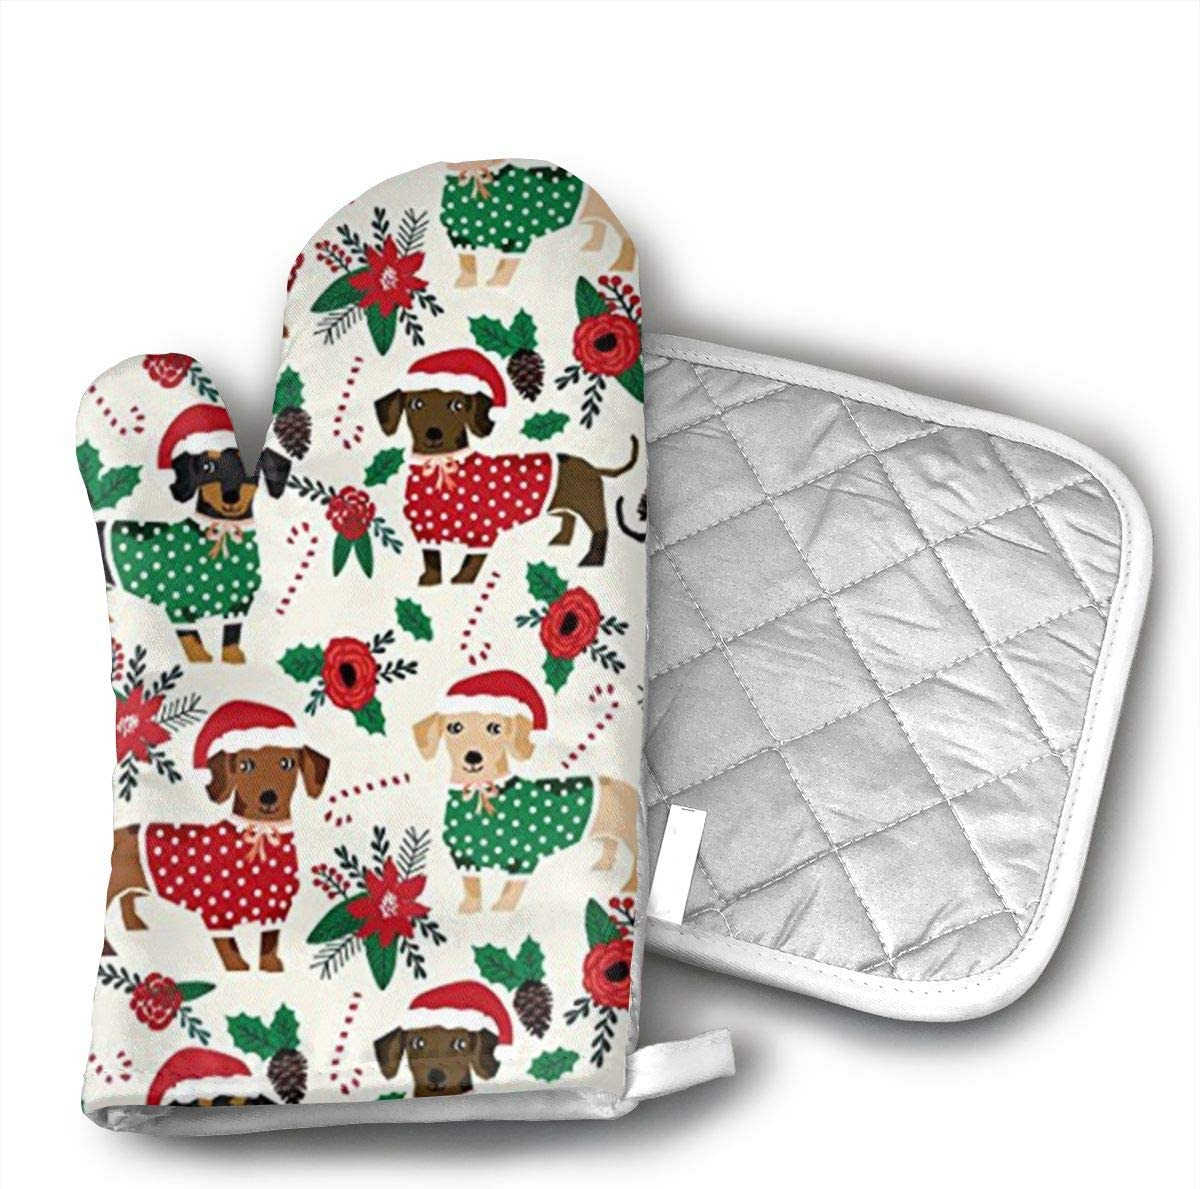 Sjiwqoj8 Doxie Christmas Cute Dachshunds Kitchen Oven Mitts,Oven Mitts and Pot Holders,Heat Resistant with Quilted Cotton Lining,Cooking,Baking,Grilling,Barbecue